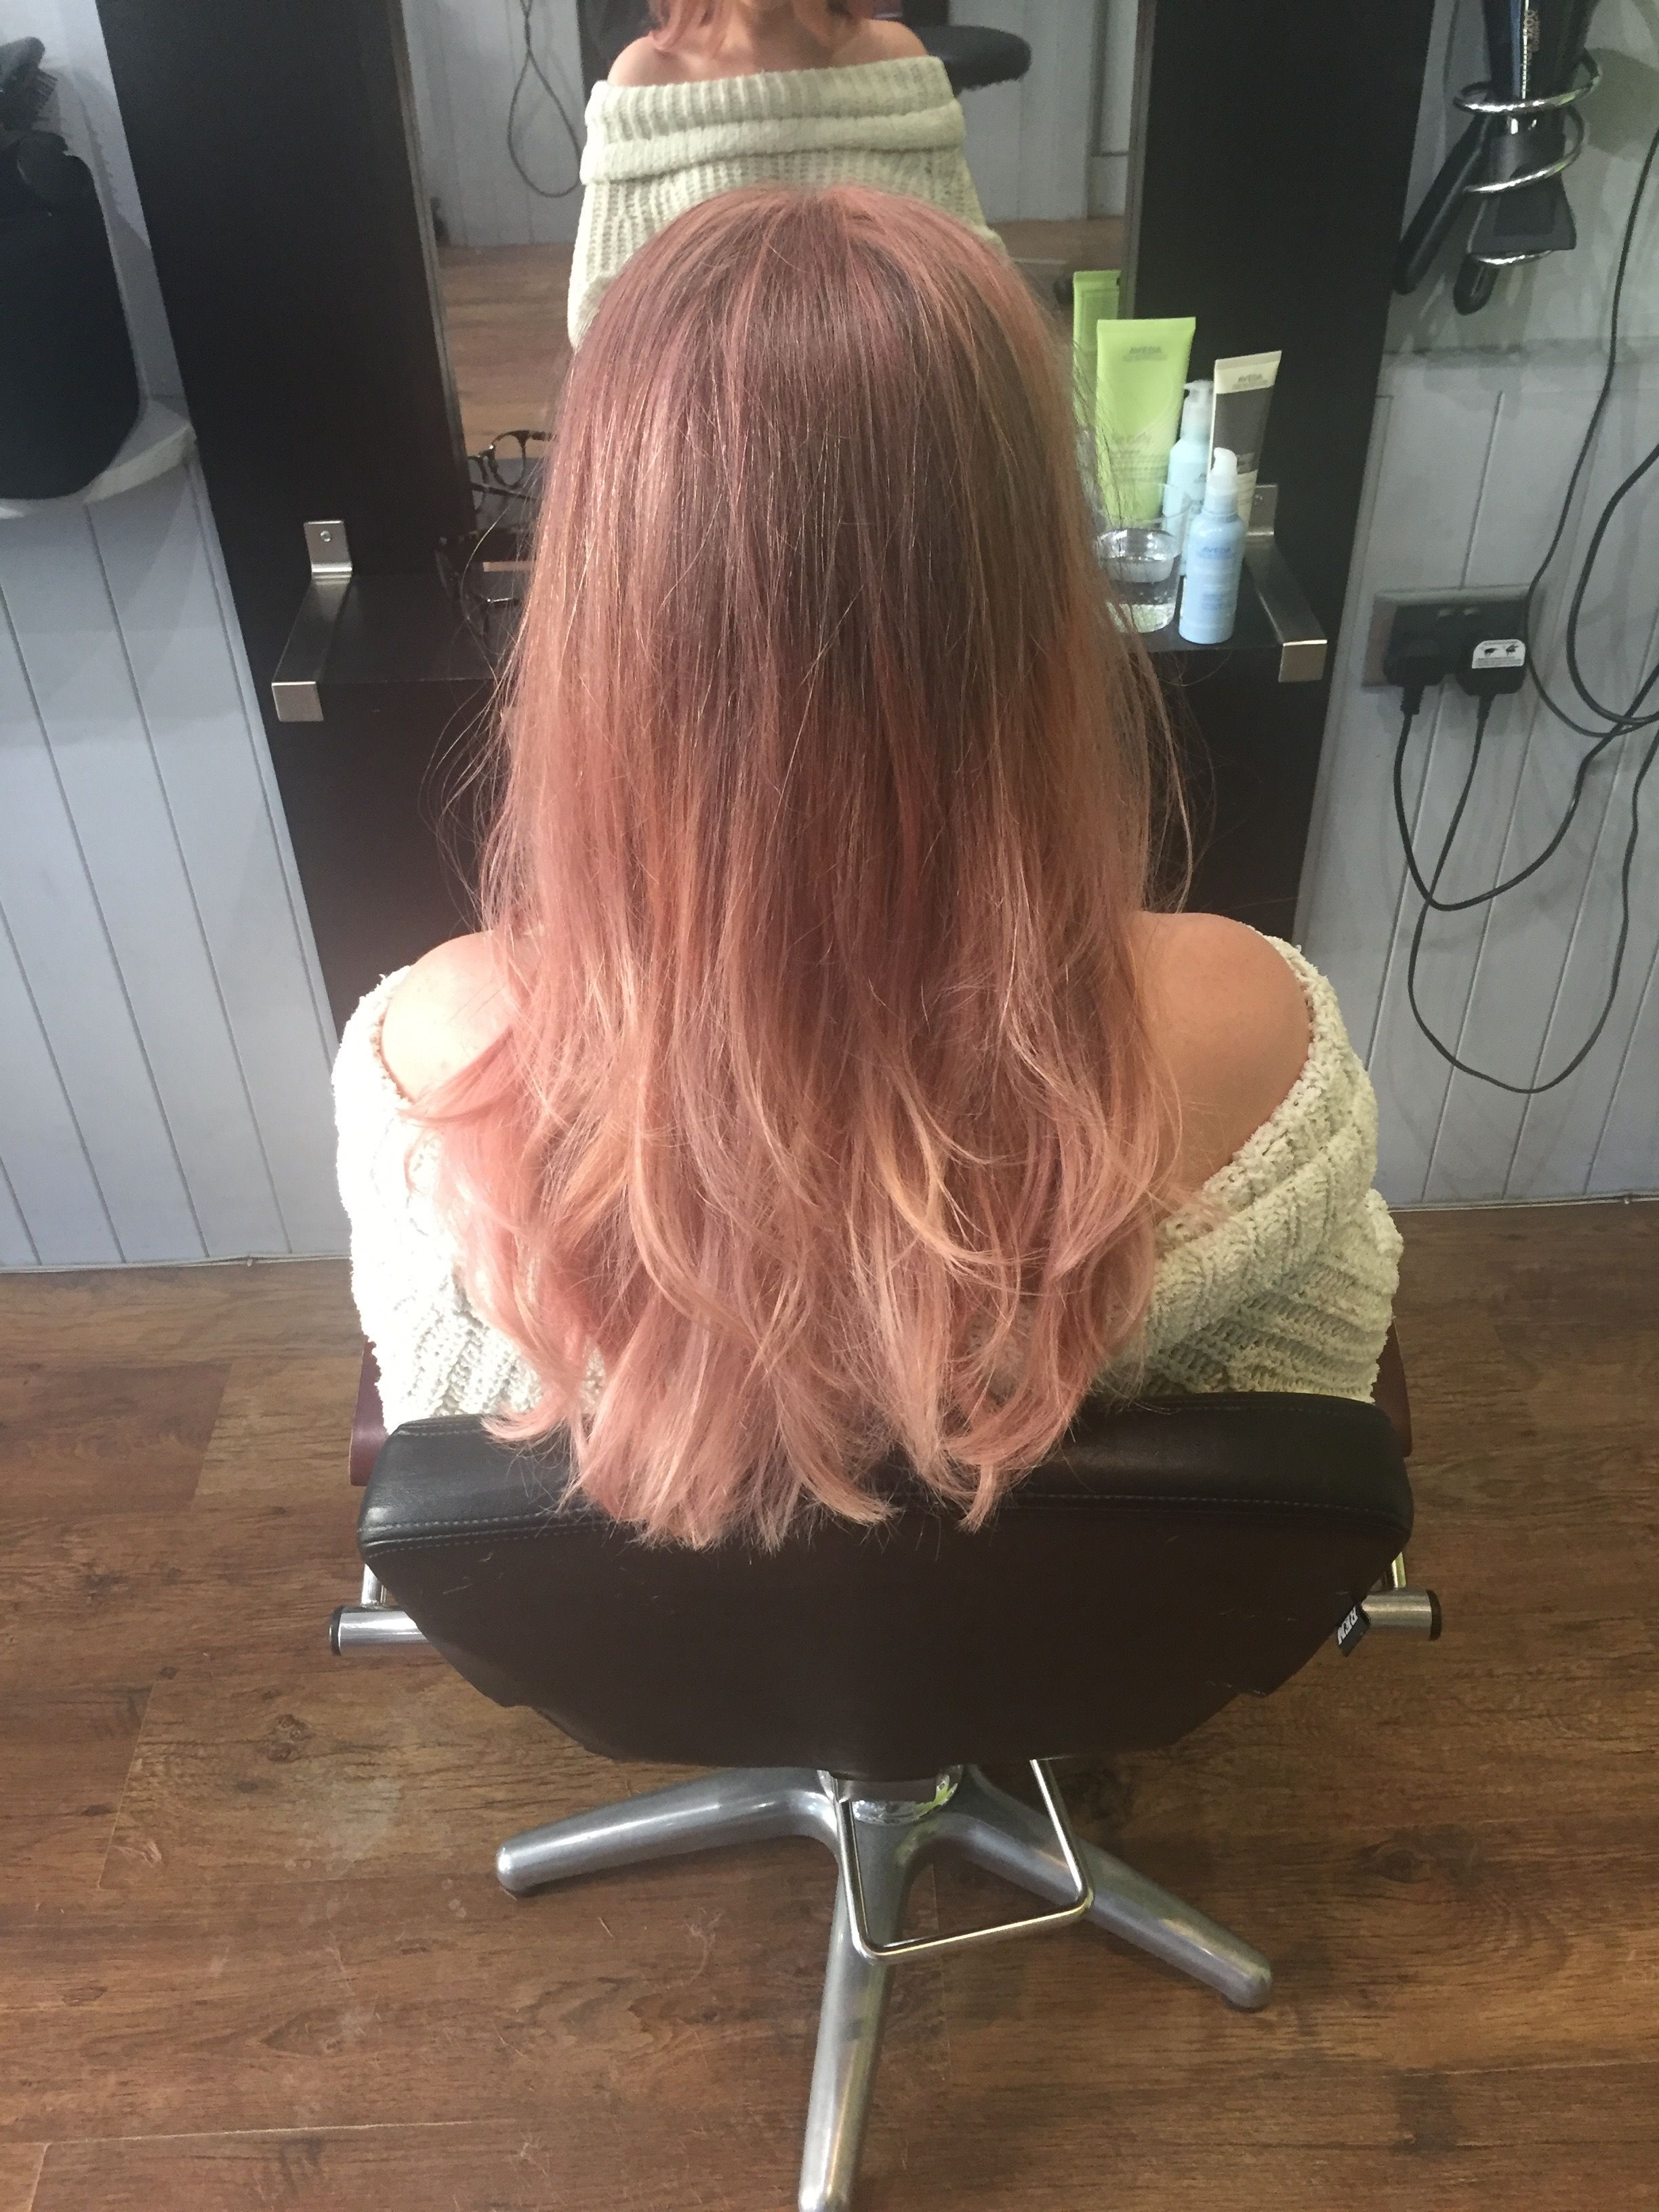 I Dyed My Hair Candy Floss Pink And I Loved It Pink Hair Dye My Hair Pink Hair Hair